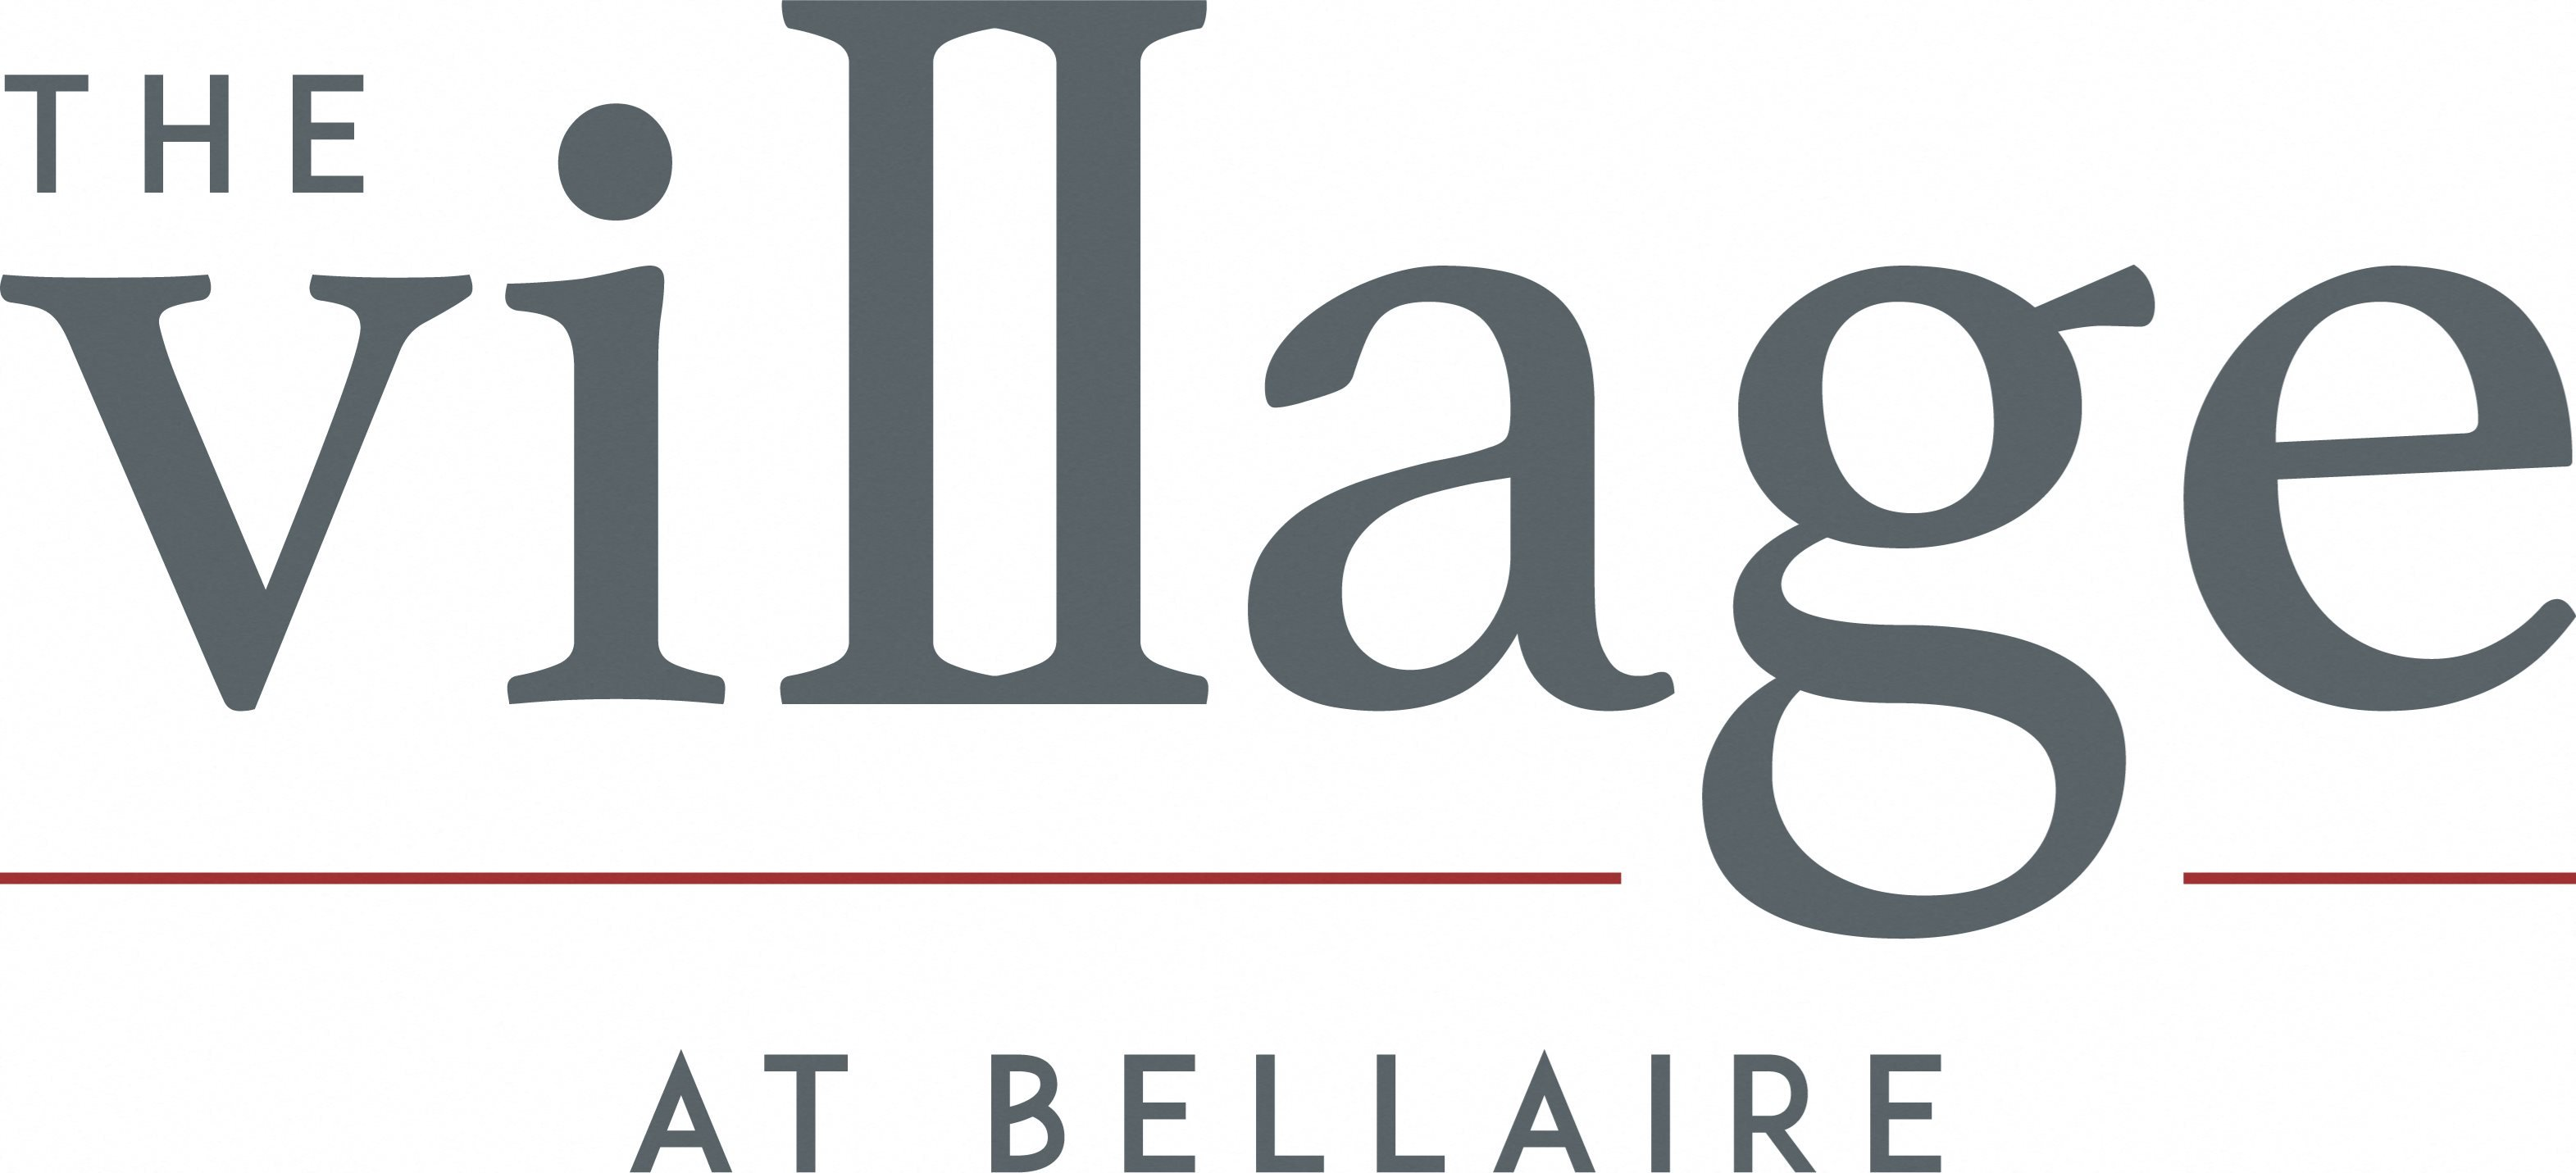 The Village at Bellaire Apartments Logo Design in Houston, Texas